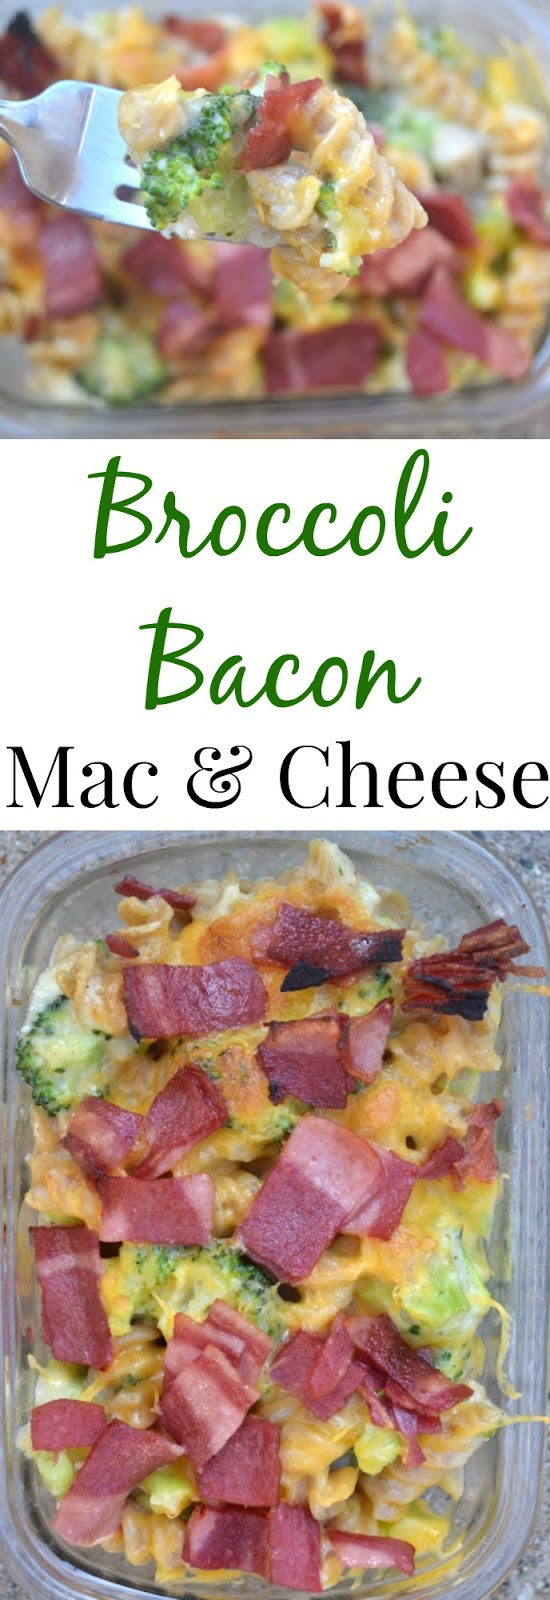 Broccoli Bacon Mac and Cheese- made lighter with a creamy cauliflower sauce and turkey bacon. www.nutritionistreviews.com